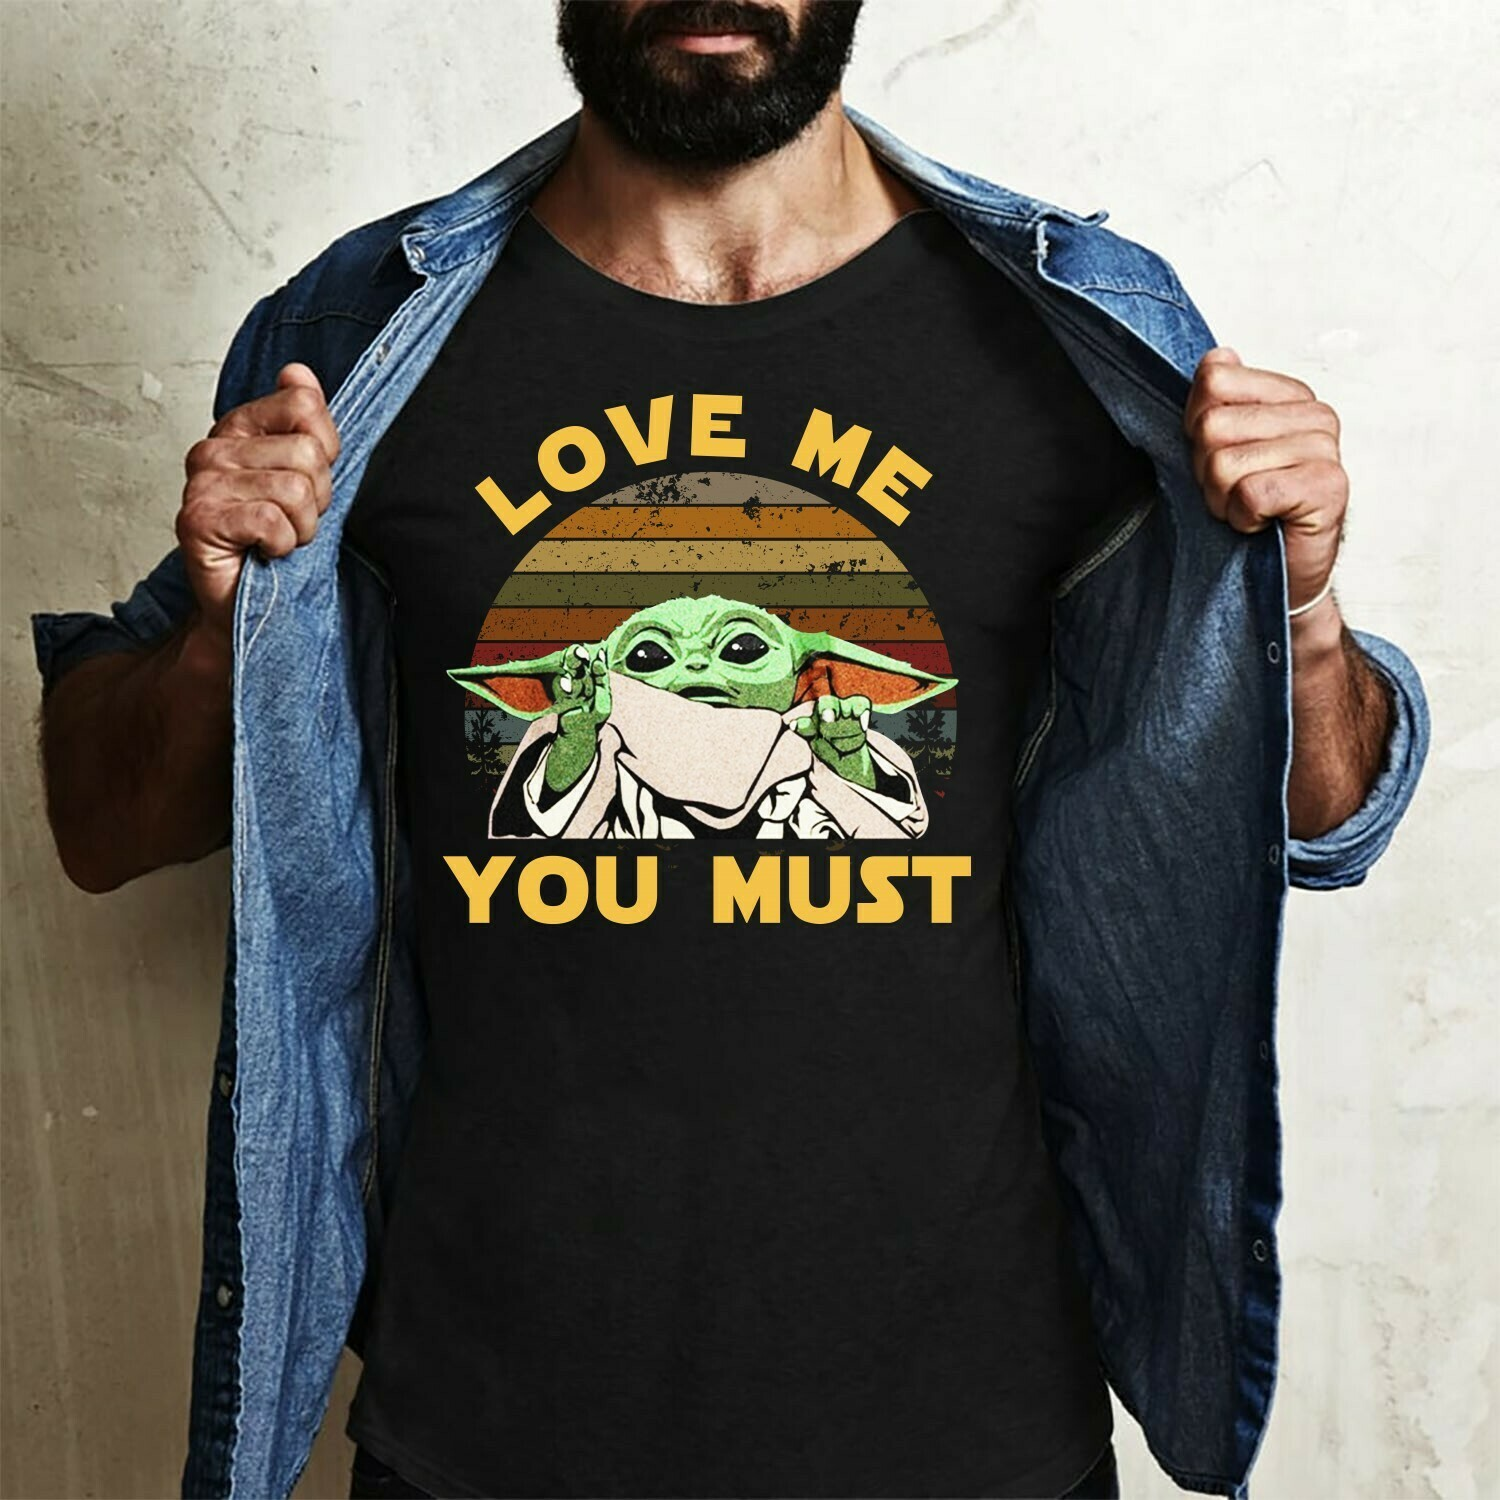 Baby yoda Love me you must,Disney Peter Pan Captain Hook,Baby Yoda Is My Patronus Star Wars Parody T shirt Long Sleeve Sweatshirt Hoodie Jolly Family Gifts